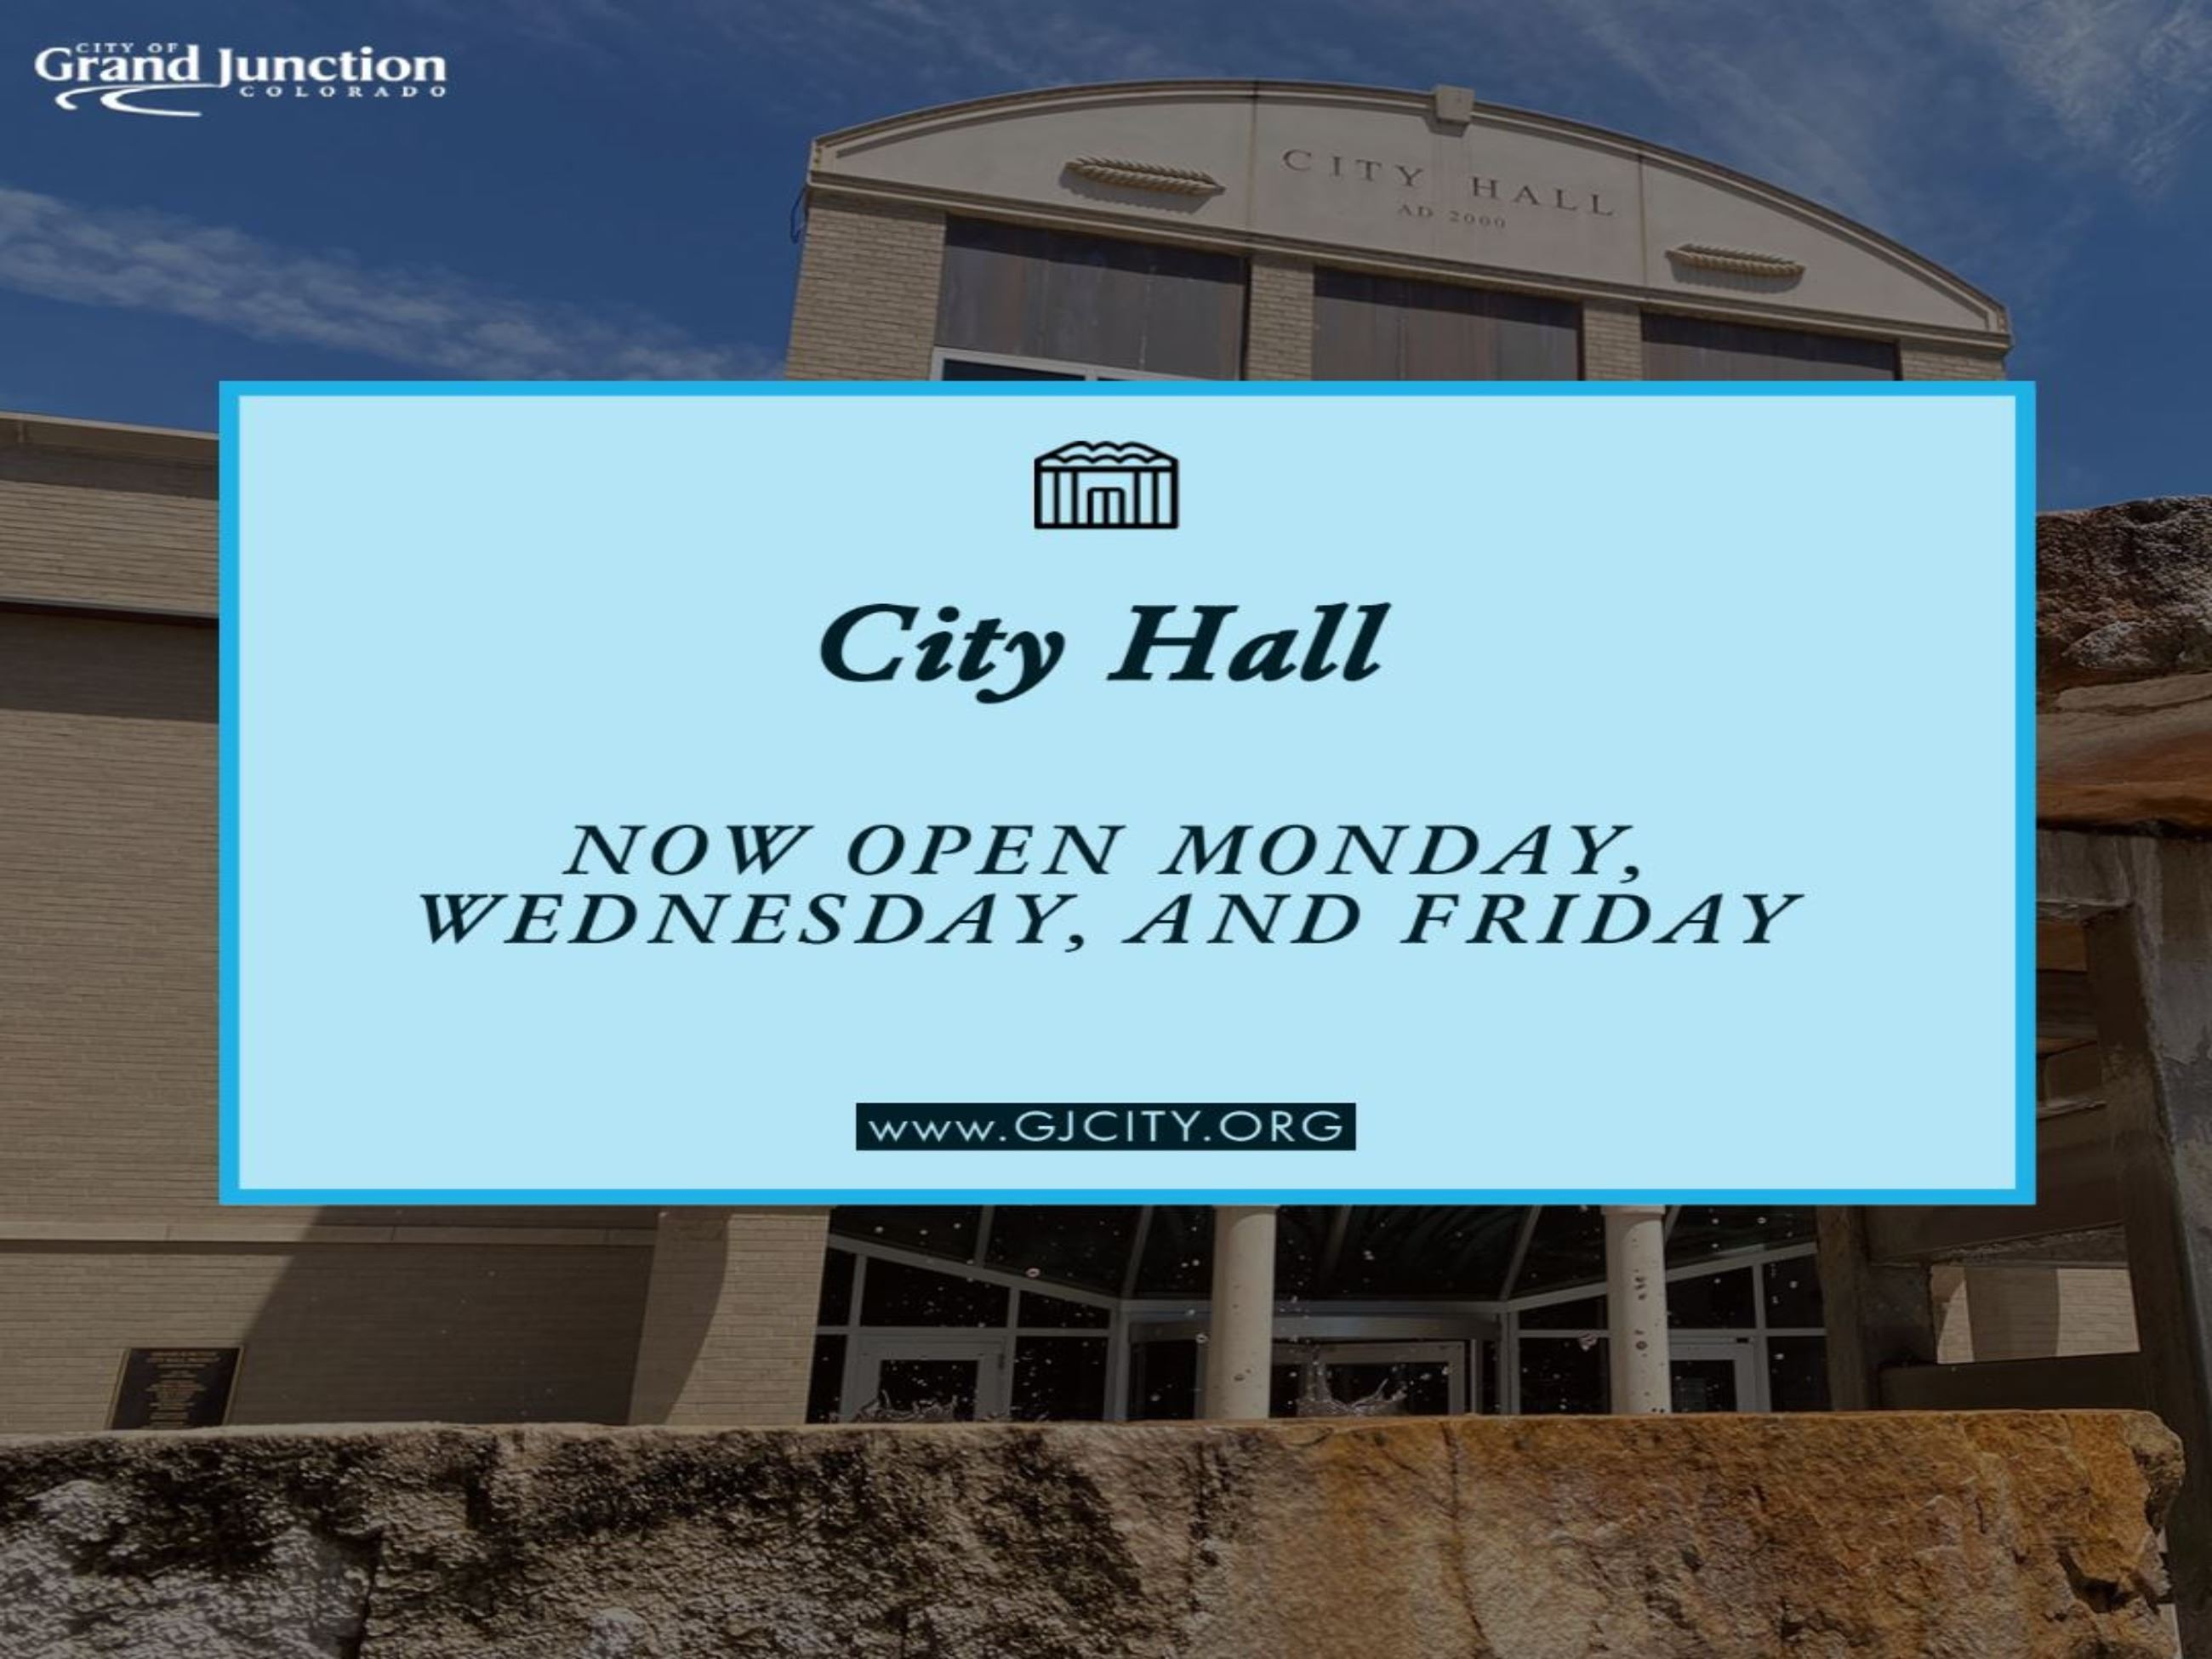 City Hall Open Monday, Wednesday. Friday